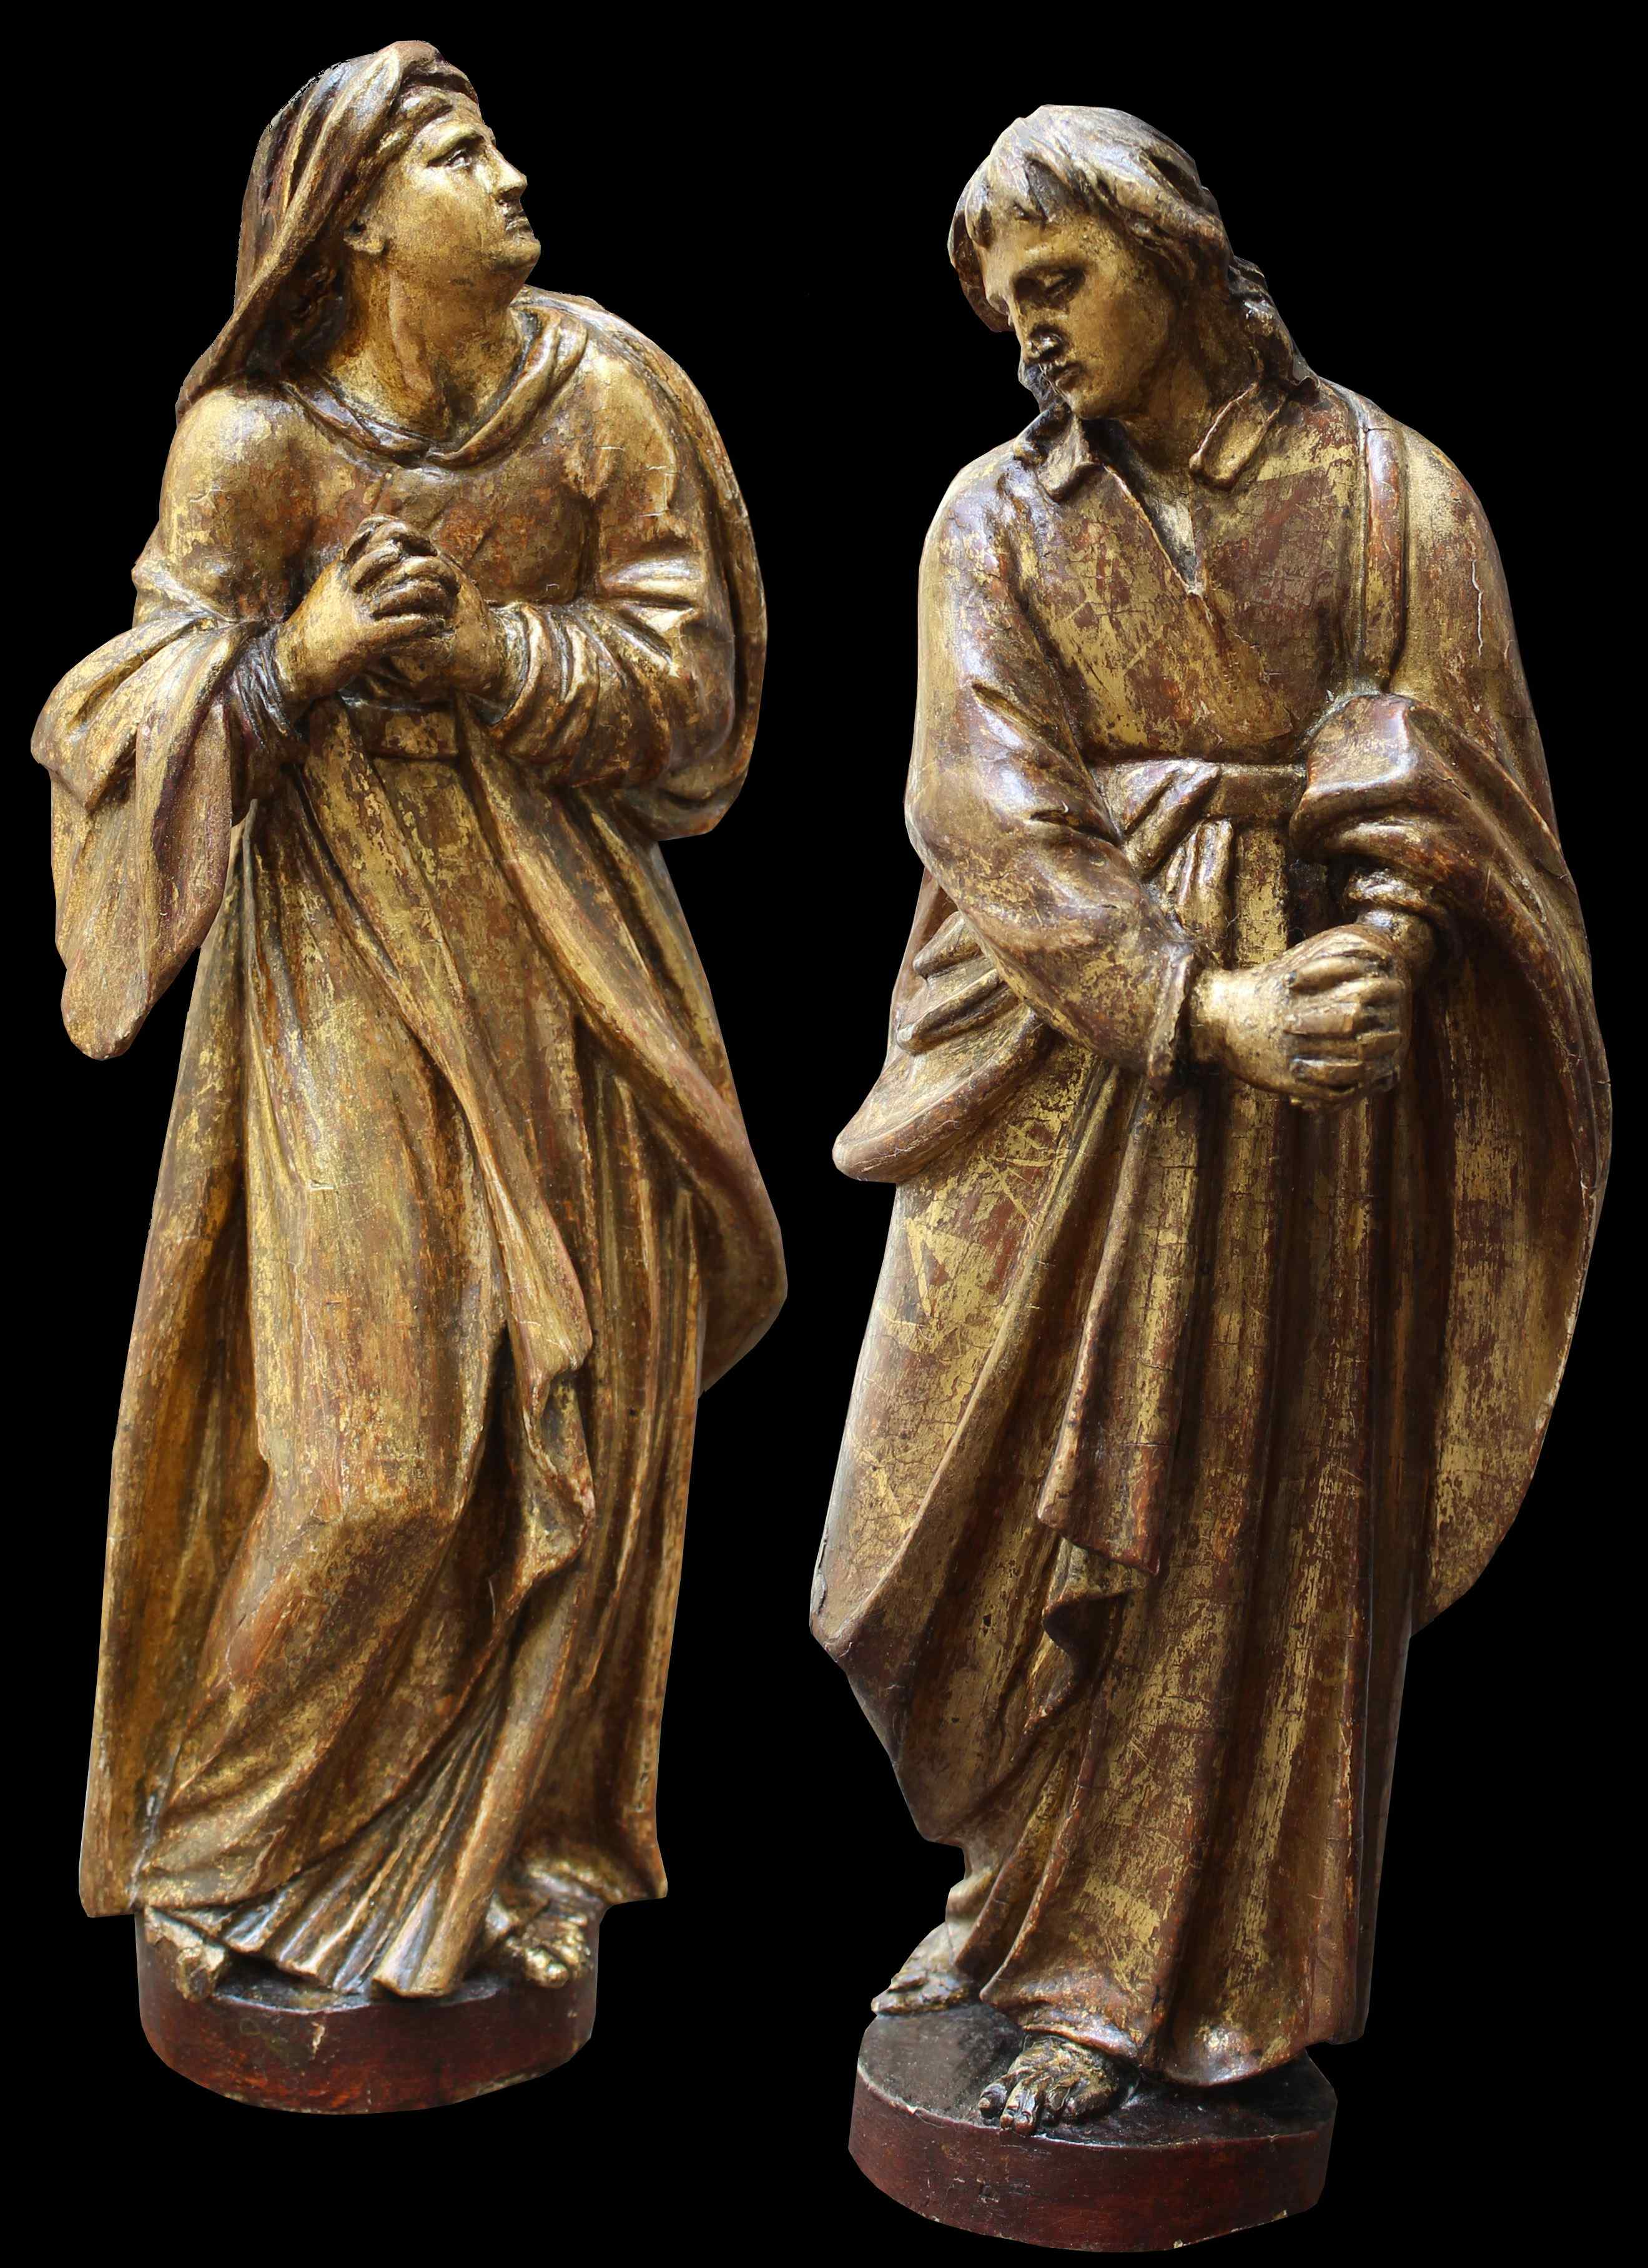 End of the sixteenth century, Virgin and St. John the Evange